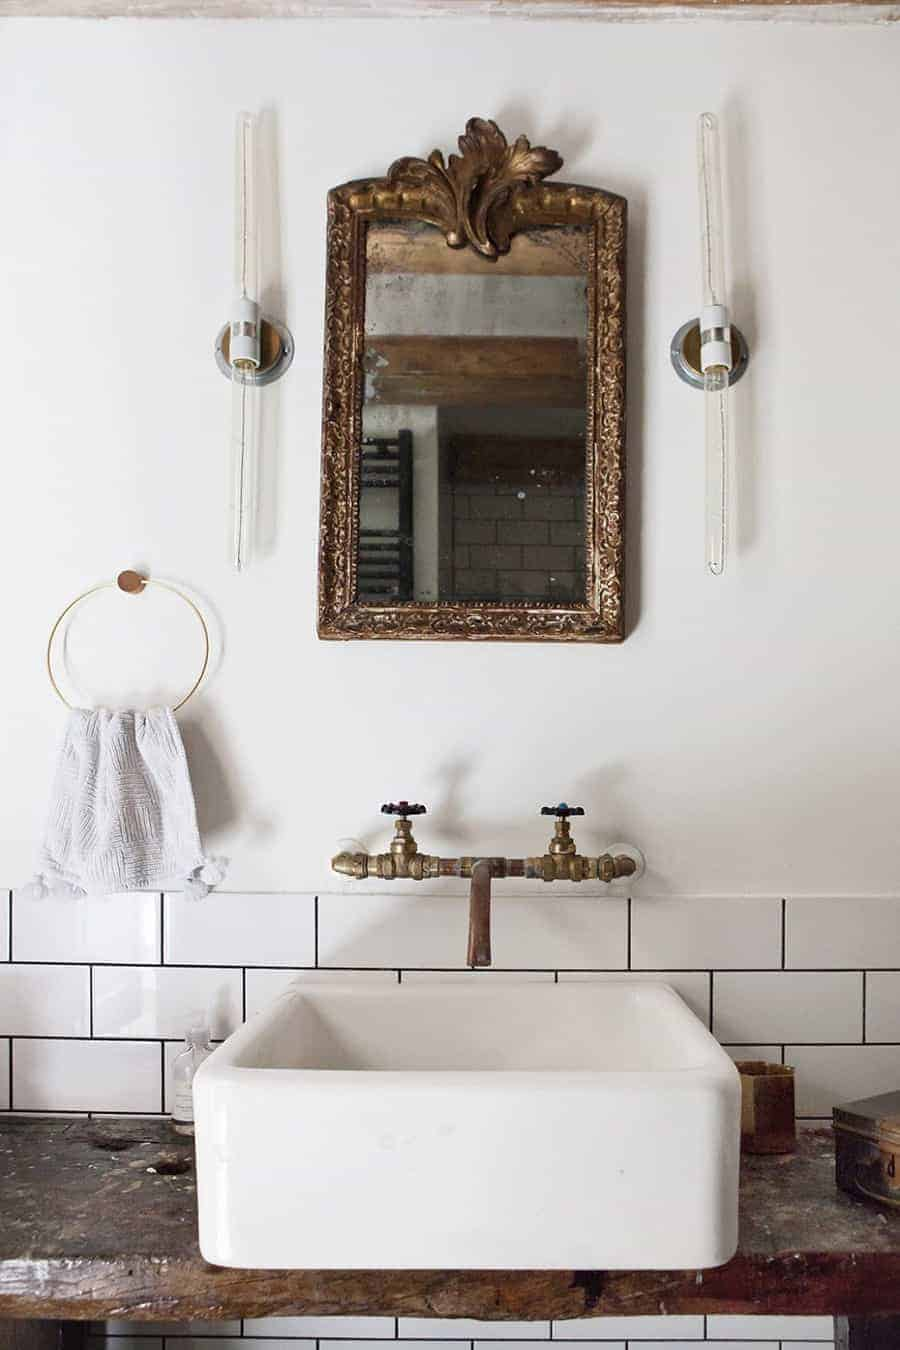 love this modern rustic bathroom by Joraima Tromp of Bricks Studio Amsterdam, with white square sink, old brass taps, vintage gilt mirror and rustic wood top with white metro tiles. Click through for more modern rustic country interiors you'll love